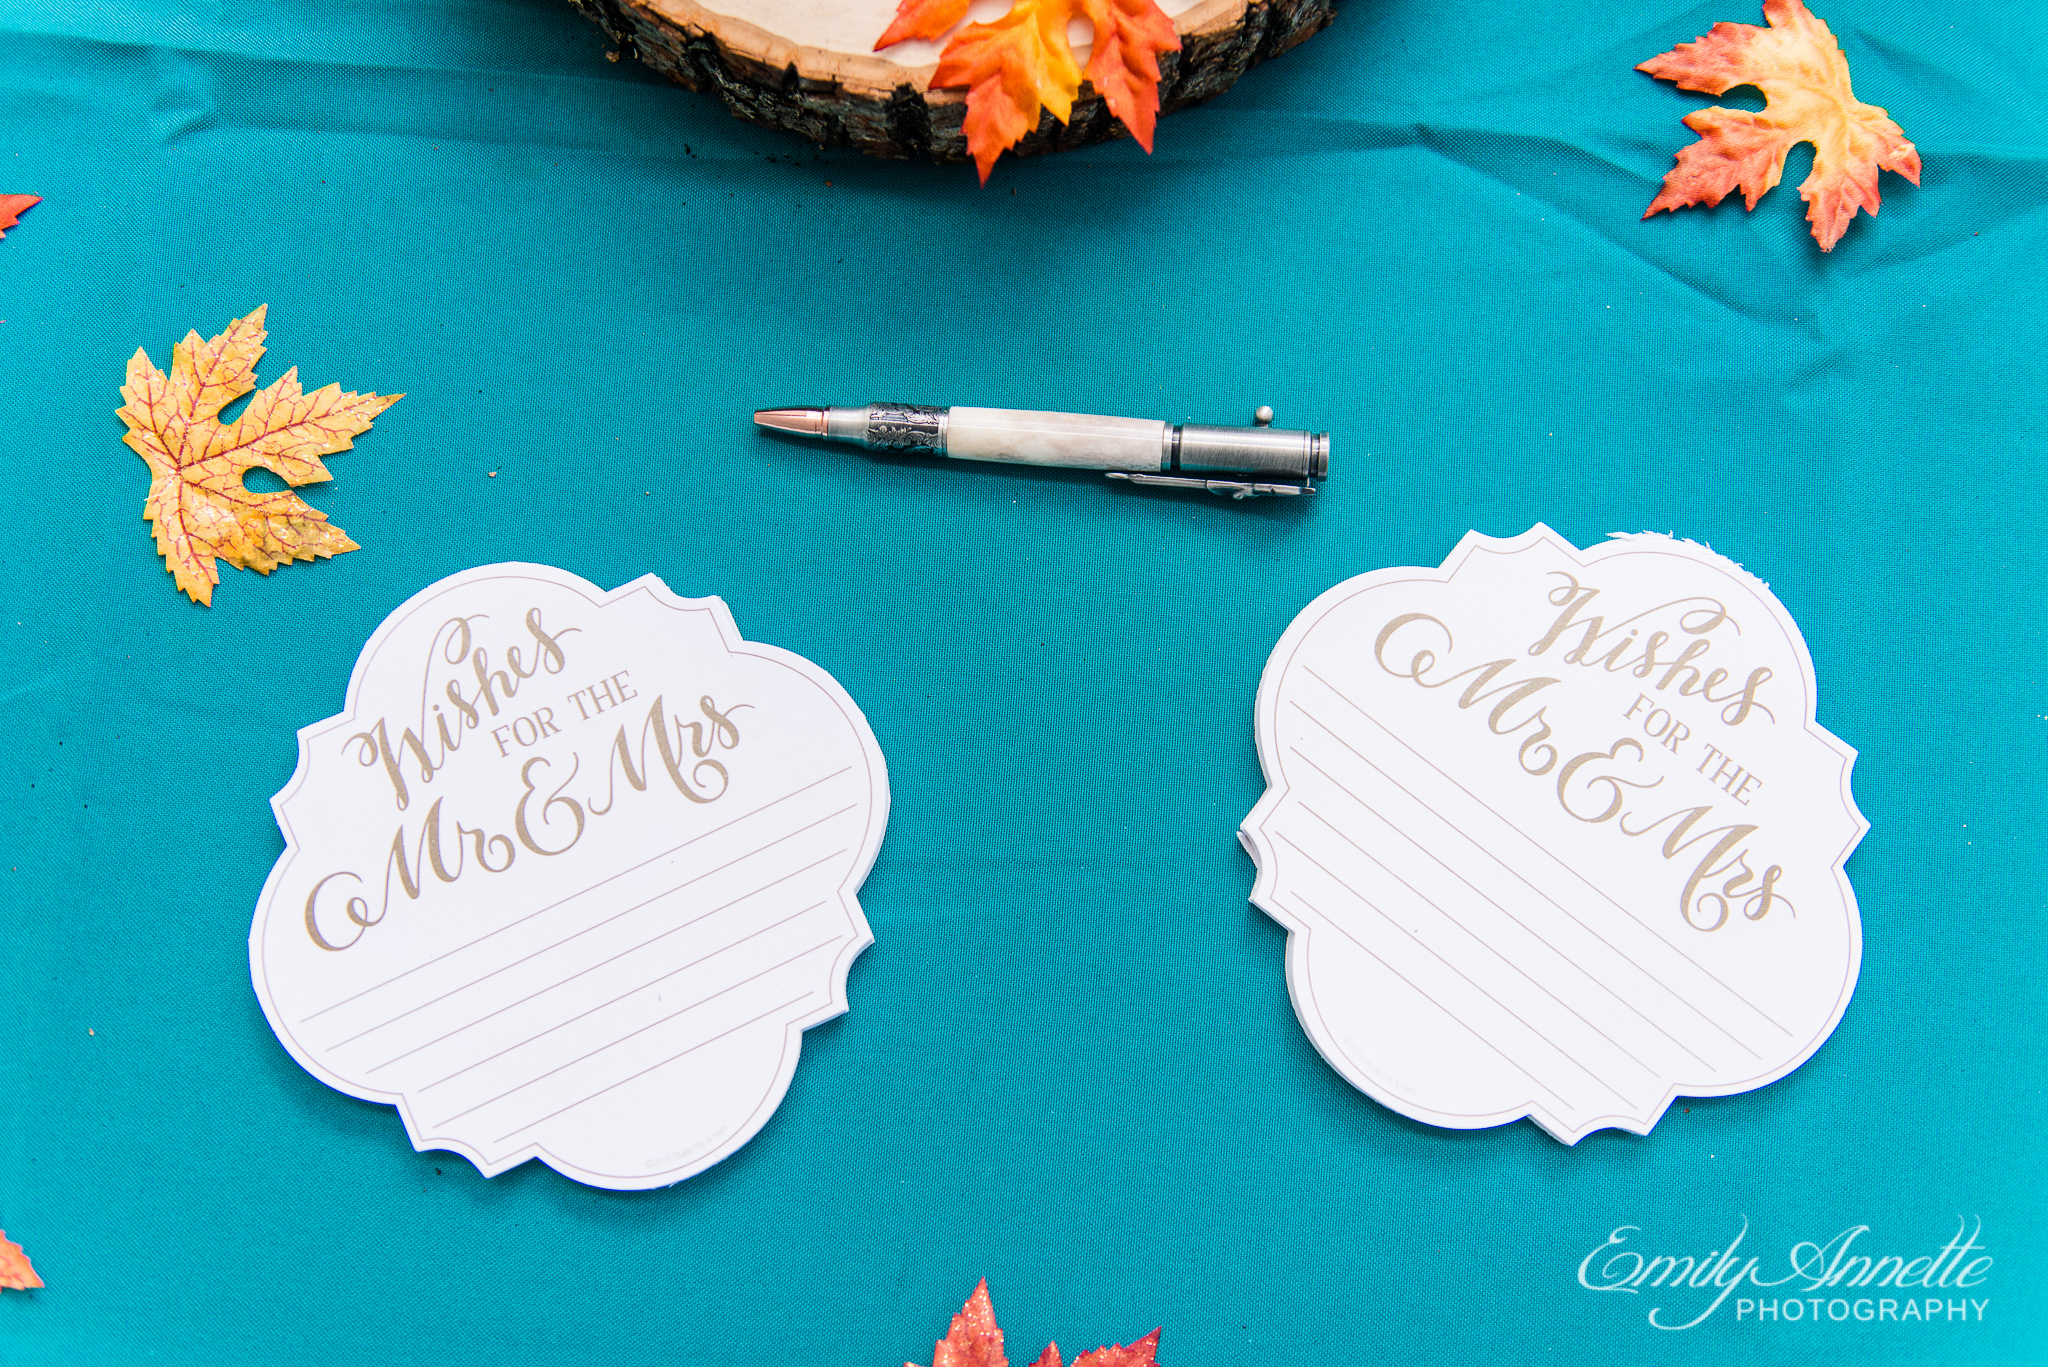 Notes for the bride and groom which decorate a country wedding reception at Amber Grove near Richmond, Virginia